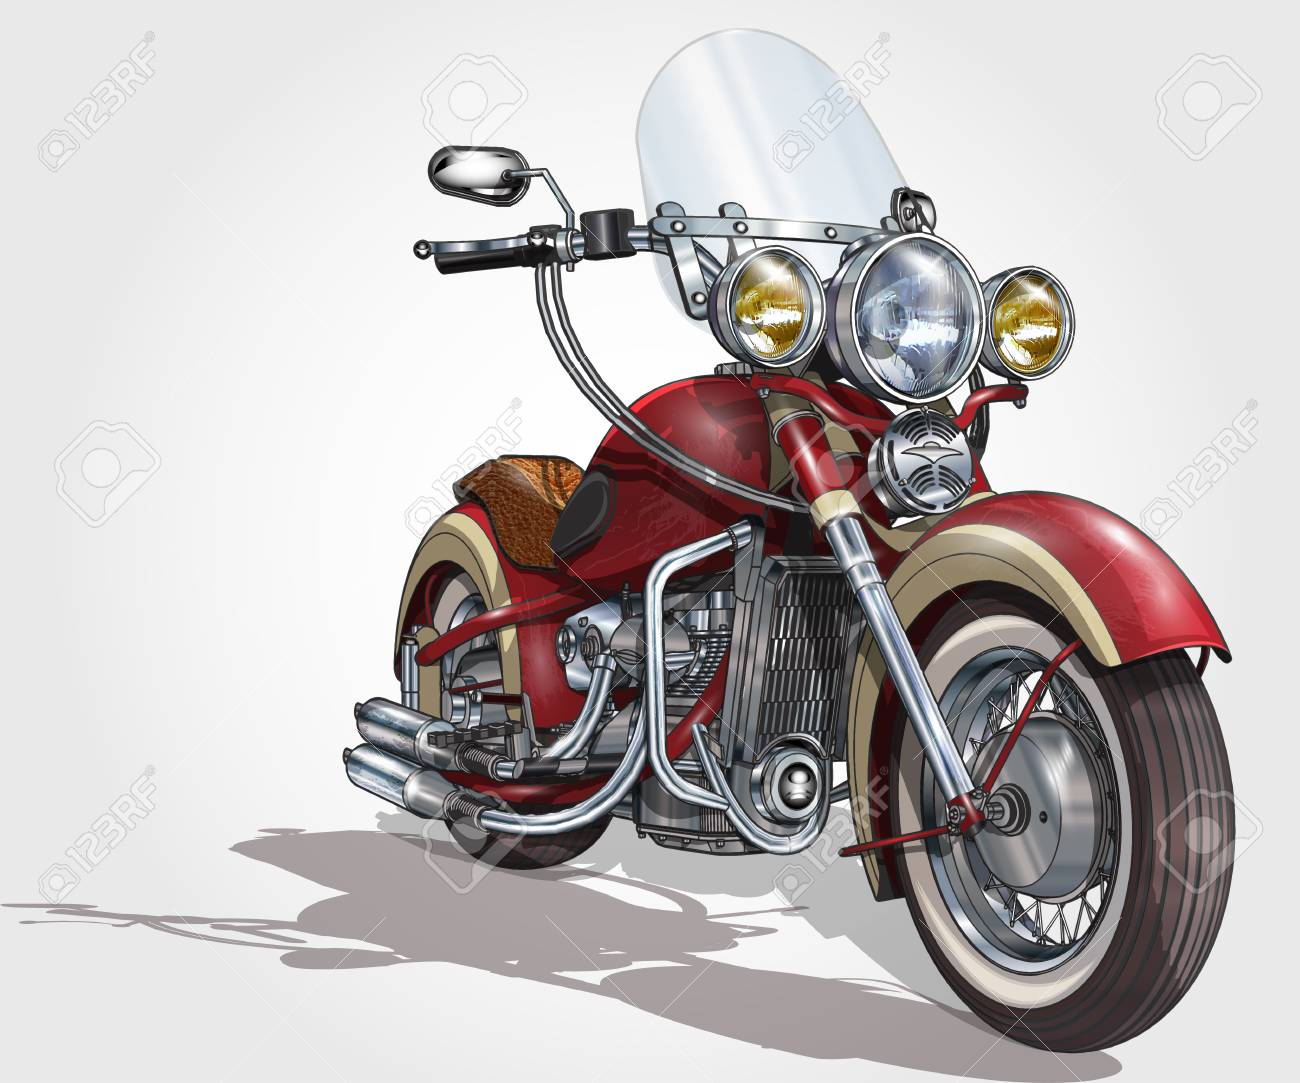 Classic vintage motorcycle. - 87933923